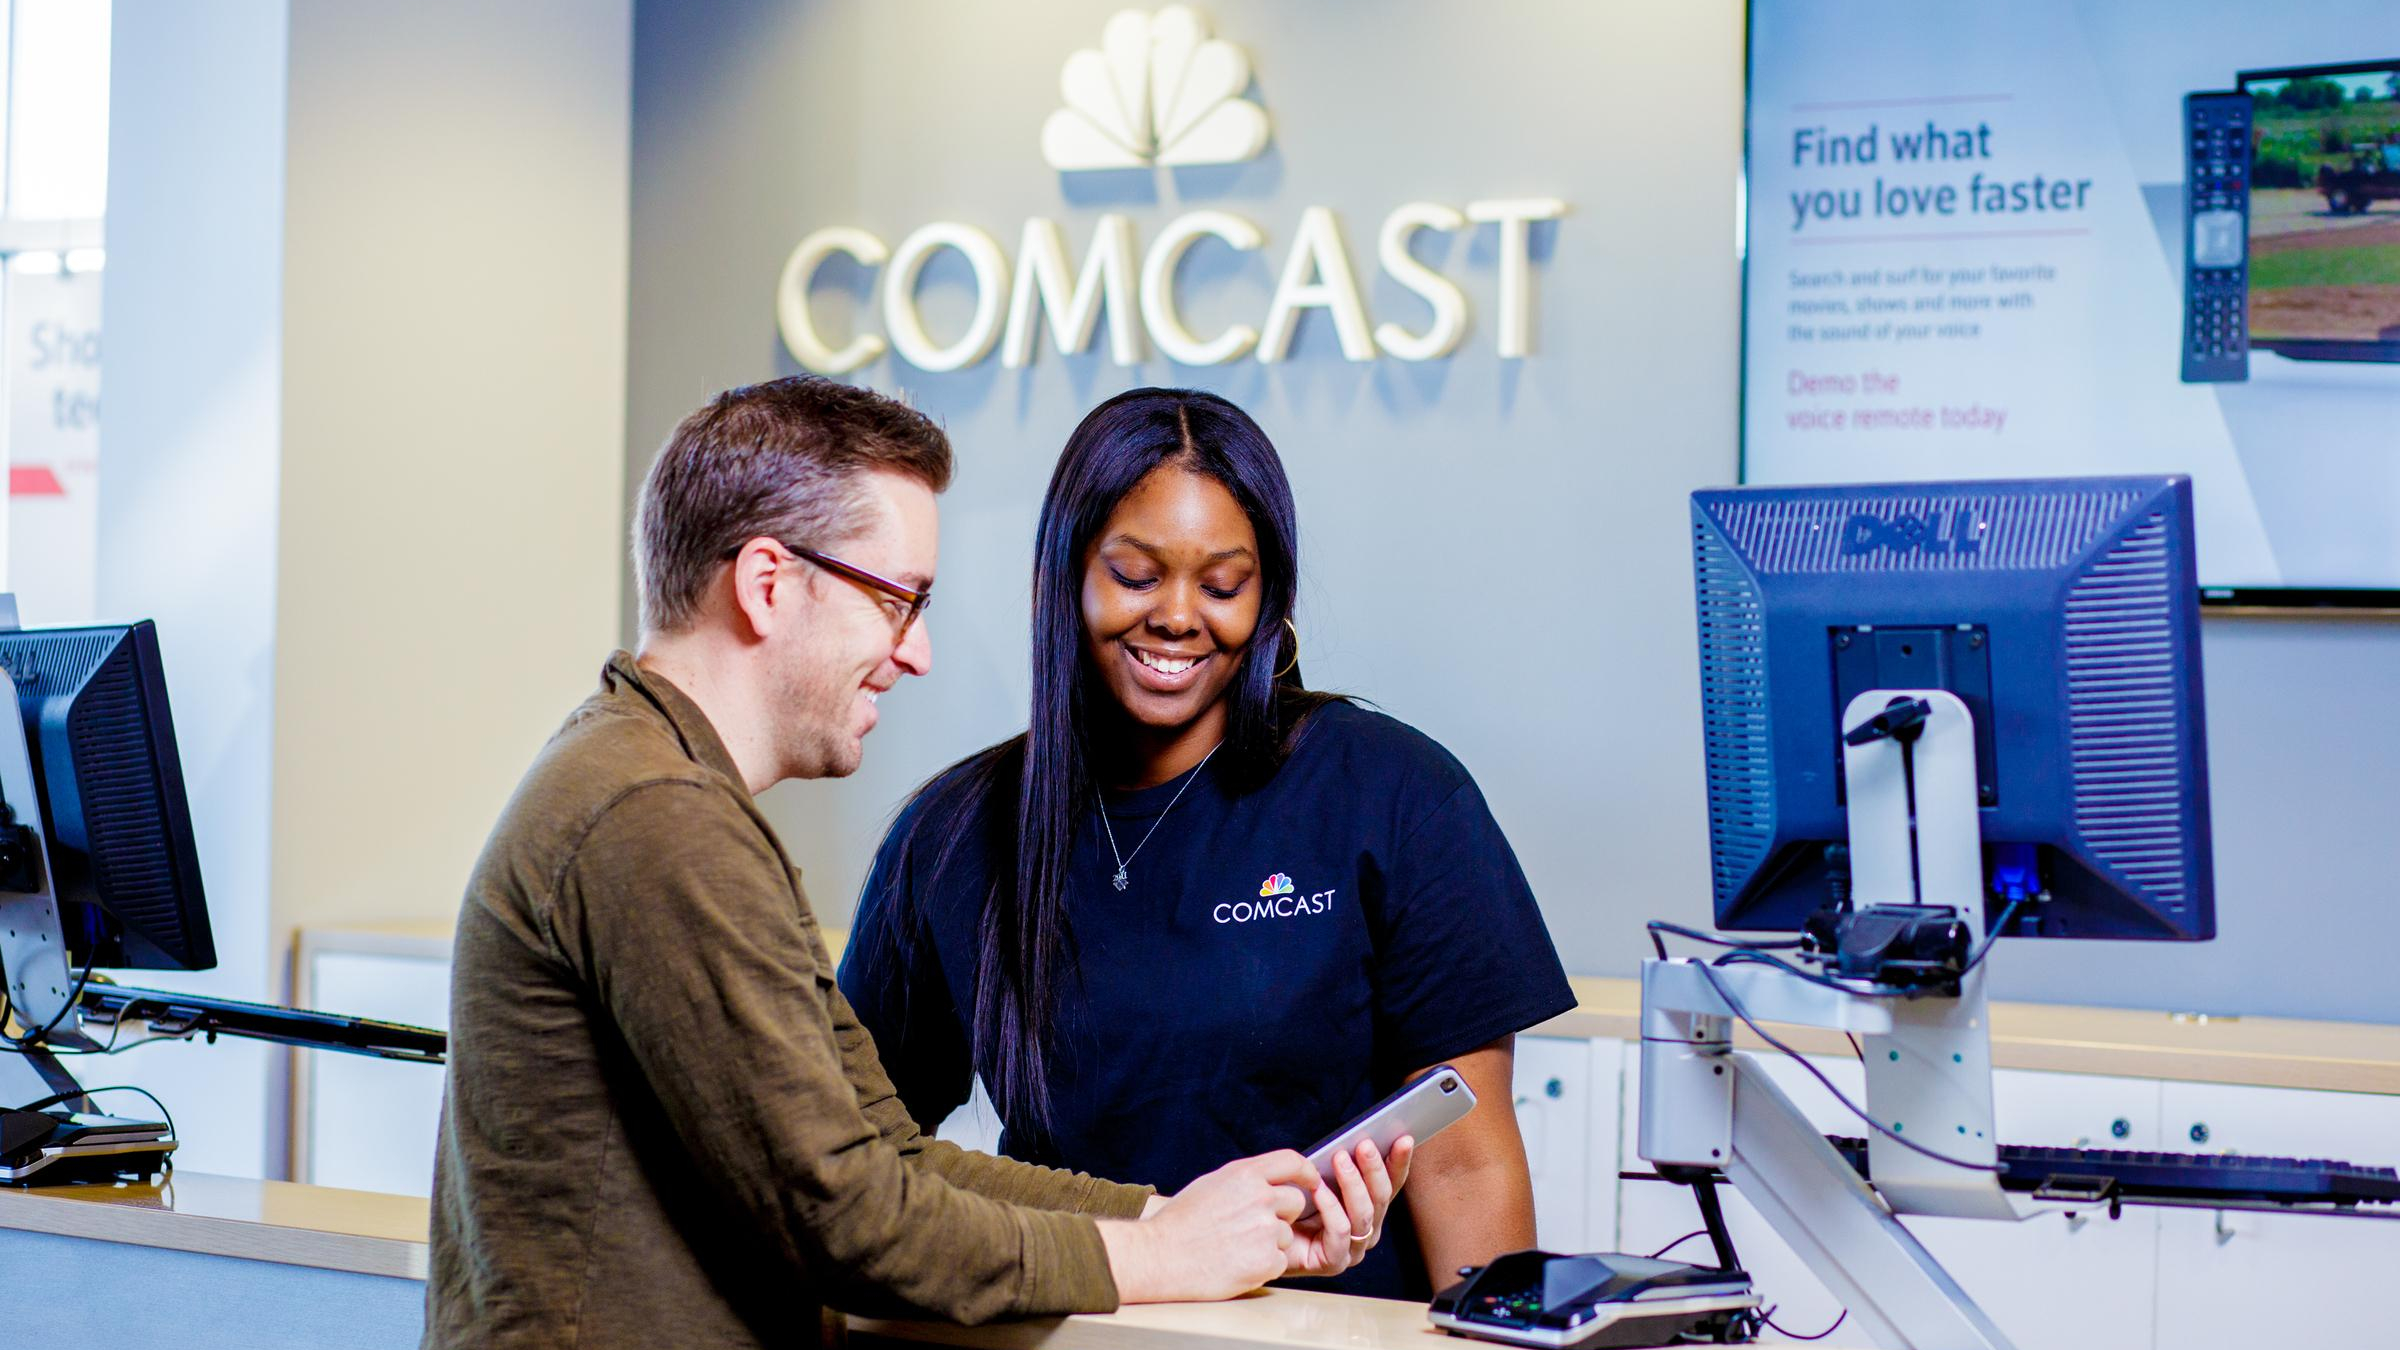 An Xfinity Store team member assists a customer